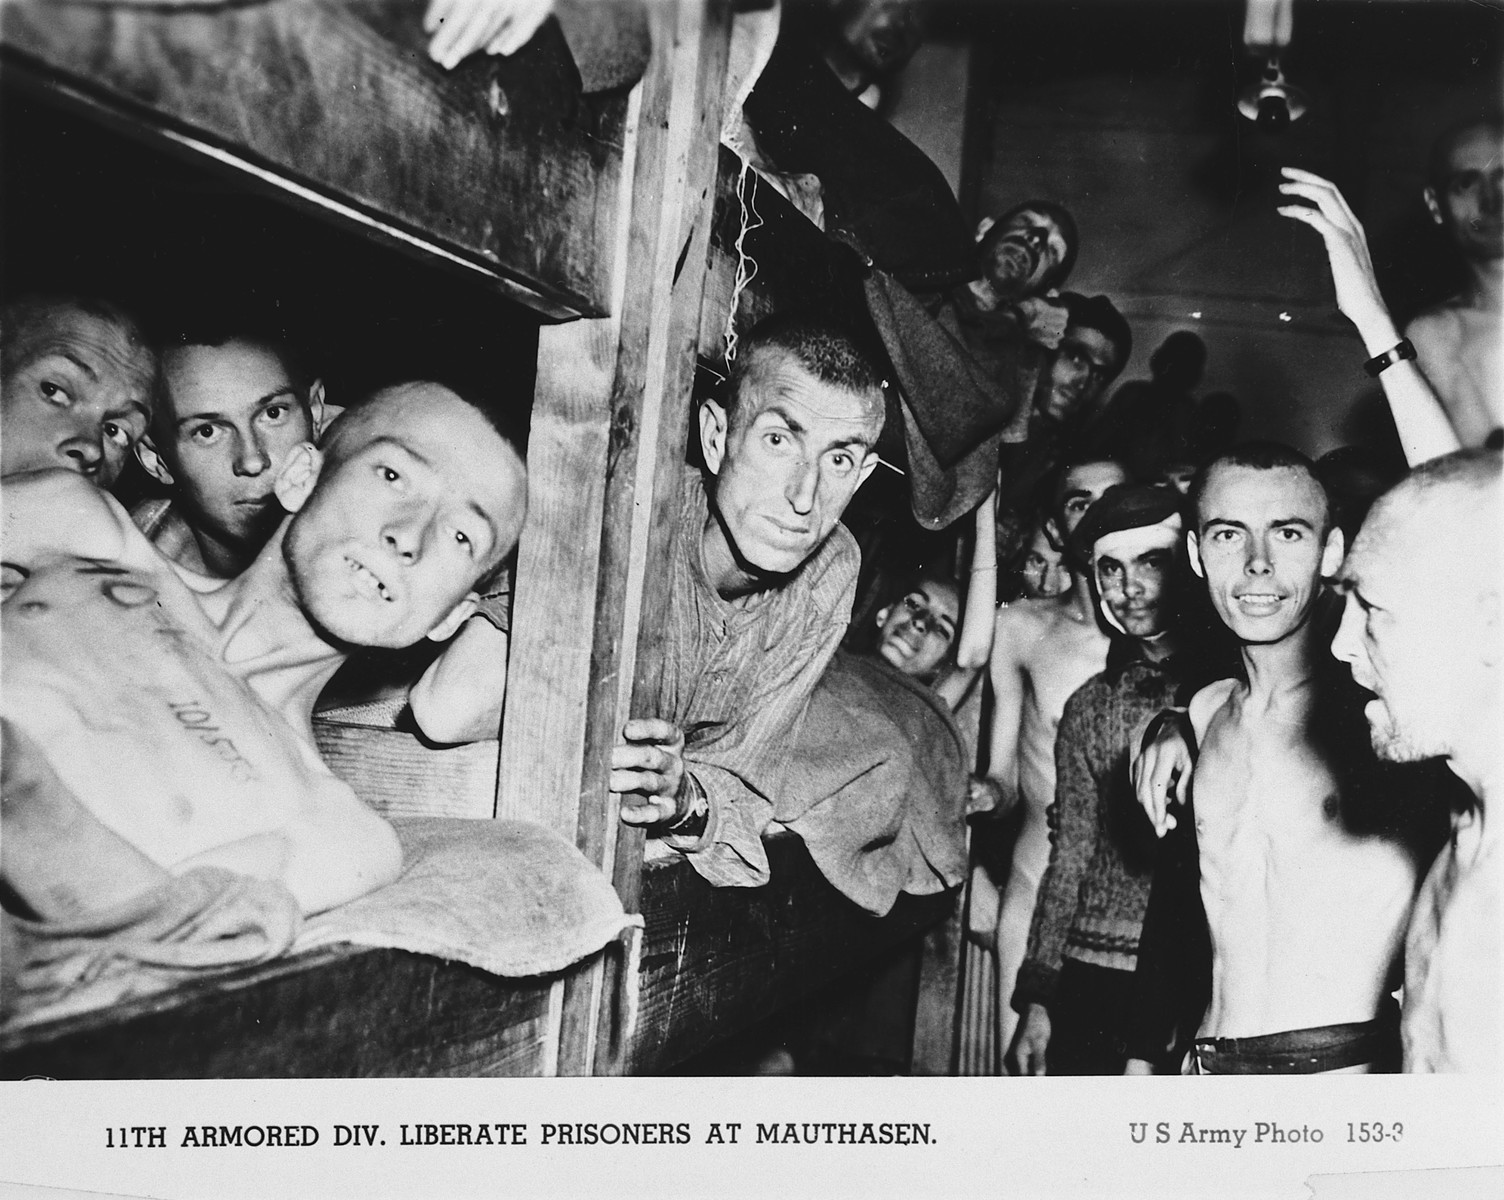 Prisoners liberated from Mauthausen, many crowded into a wooden bunk, celebrate their liberation by the American 11th Armored Division.